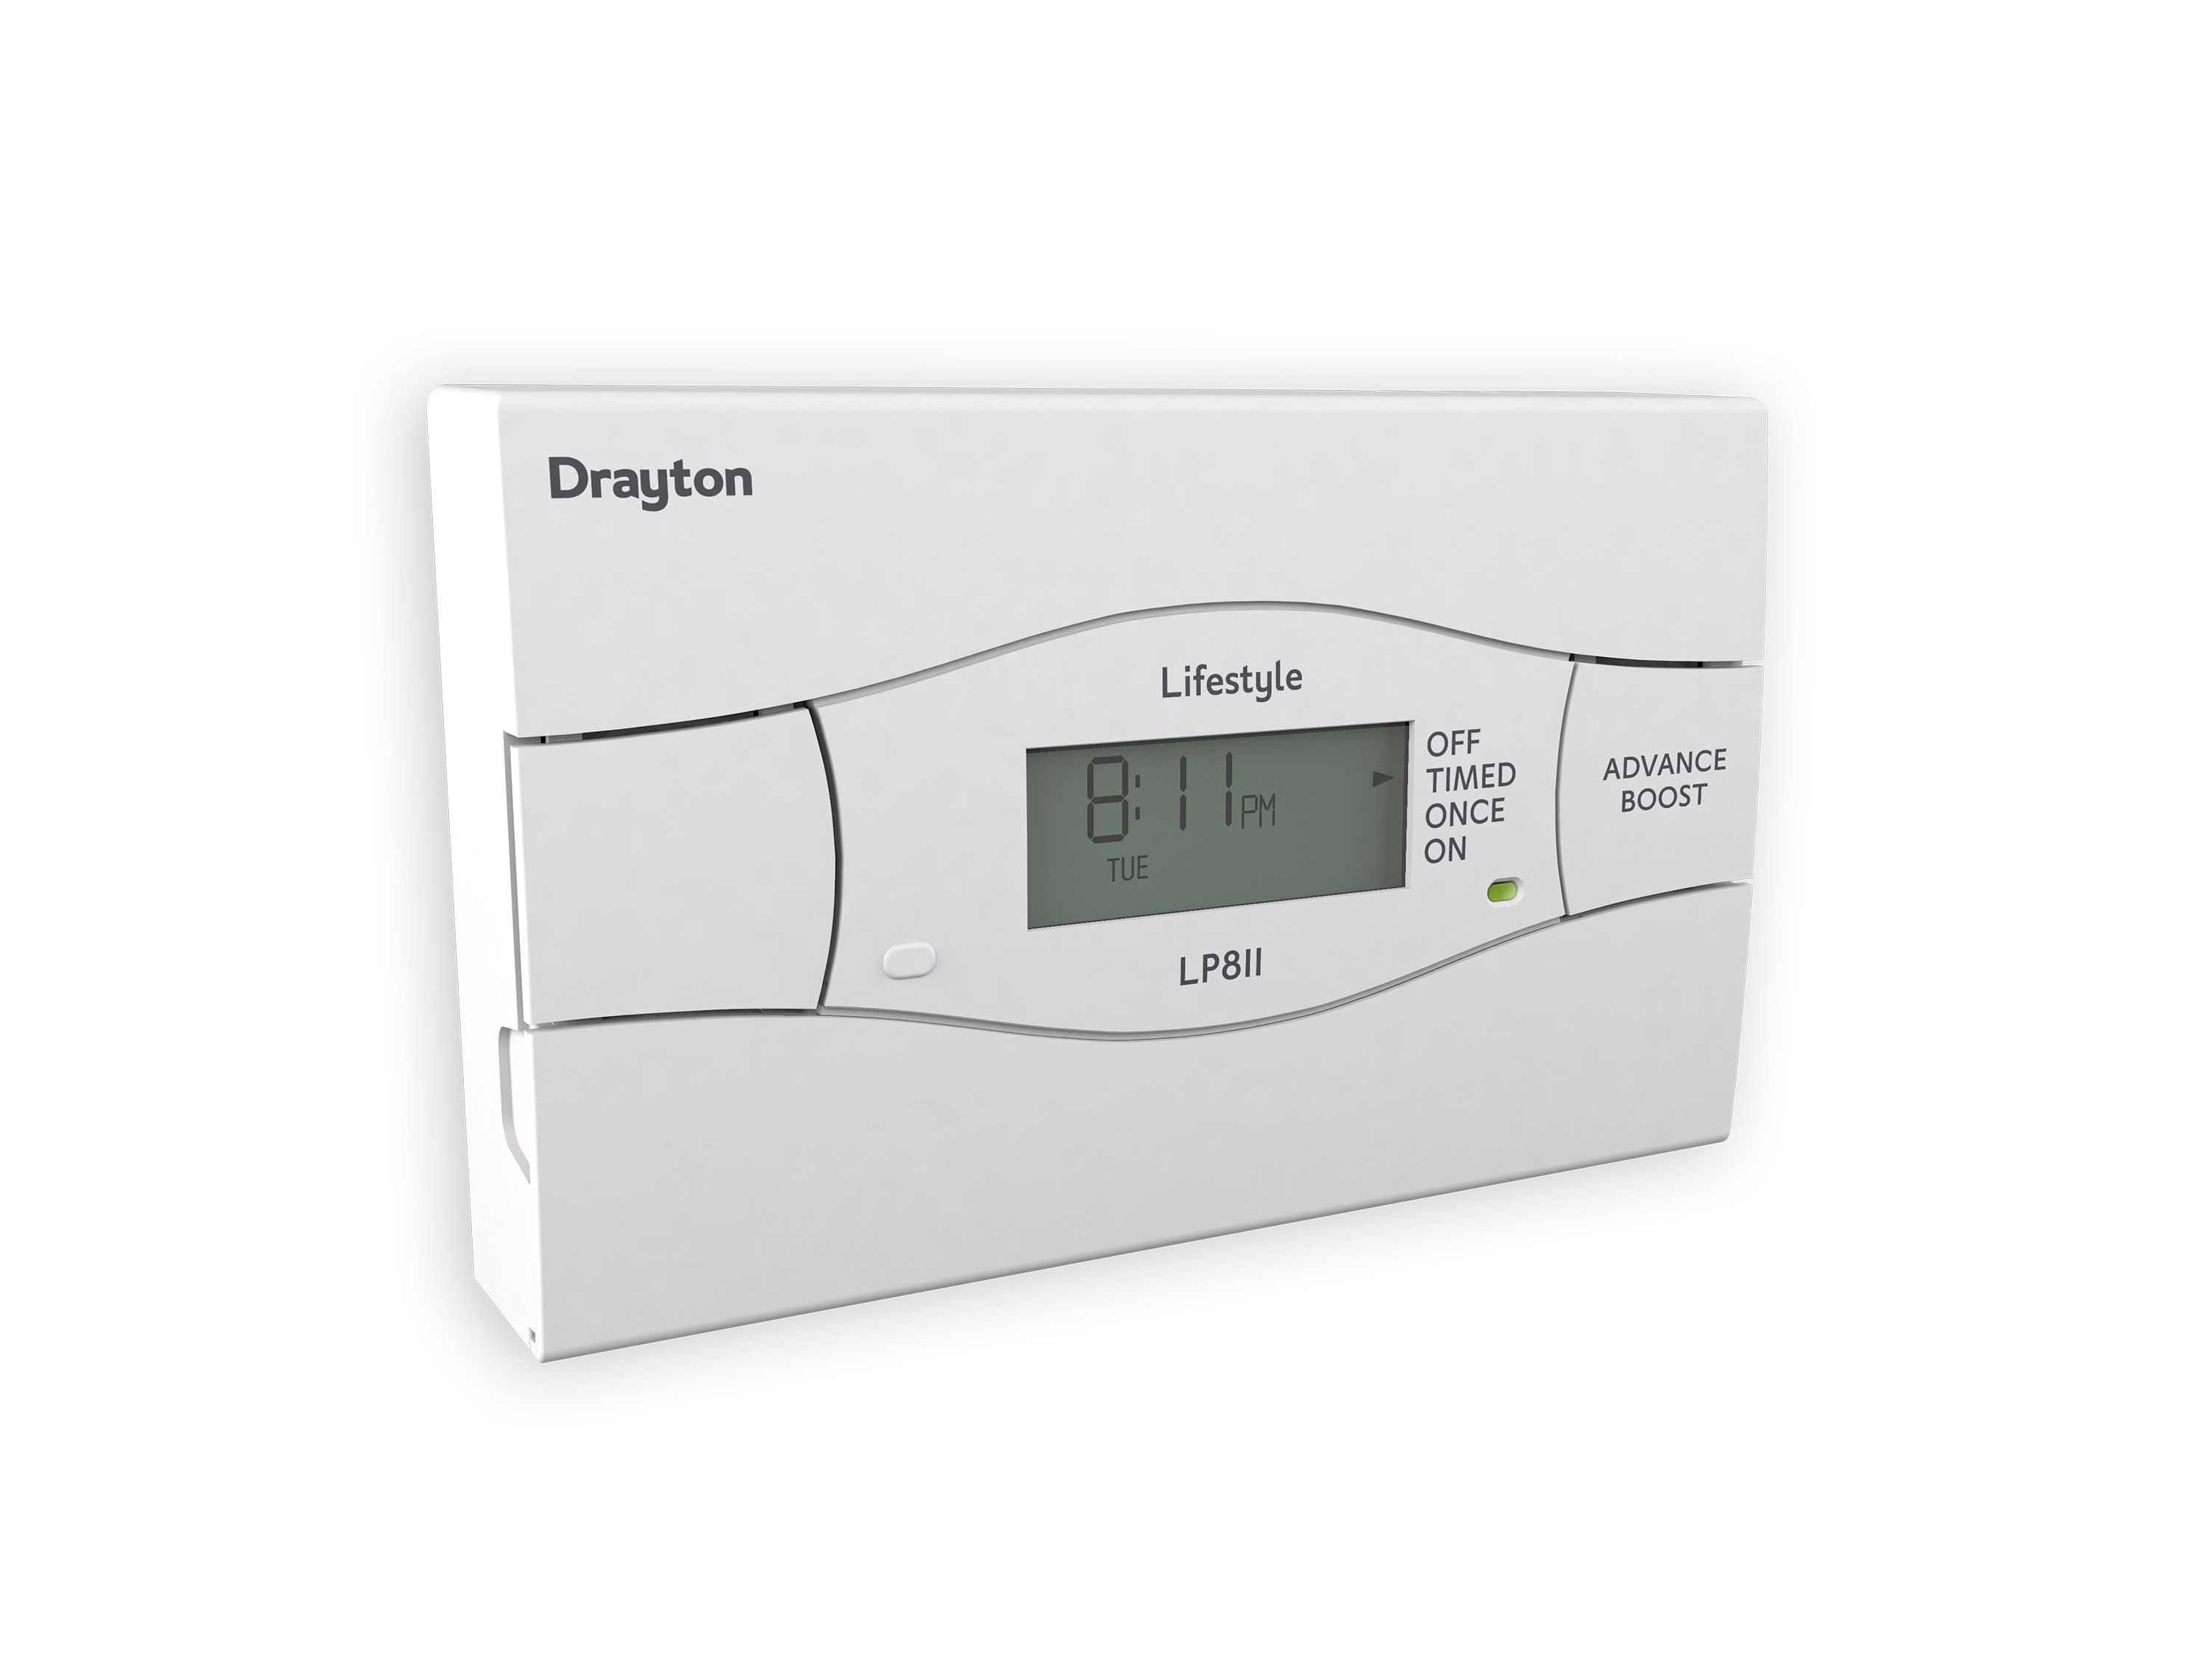 honeywell rth6350 thermostat wiring doityourself community Central Heating Wiring Diagrams honeywell central heating thermostat wiring diagram wiring diagram, wiring diagram central heating wiring diagrams